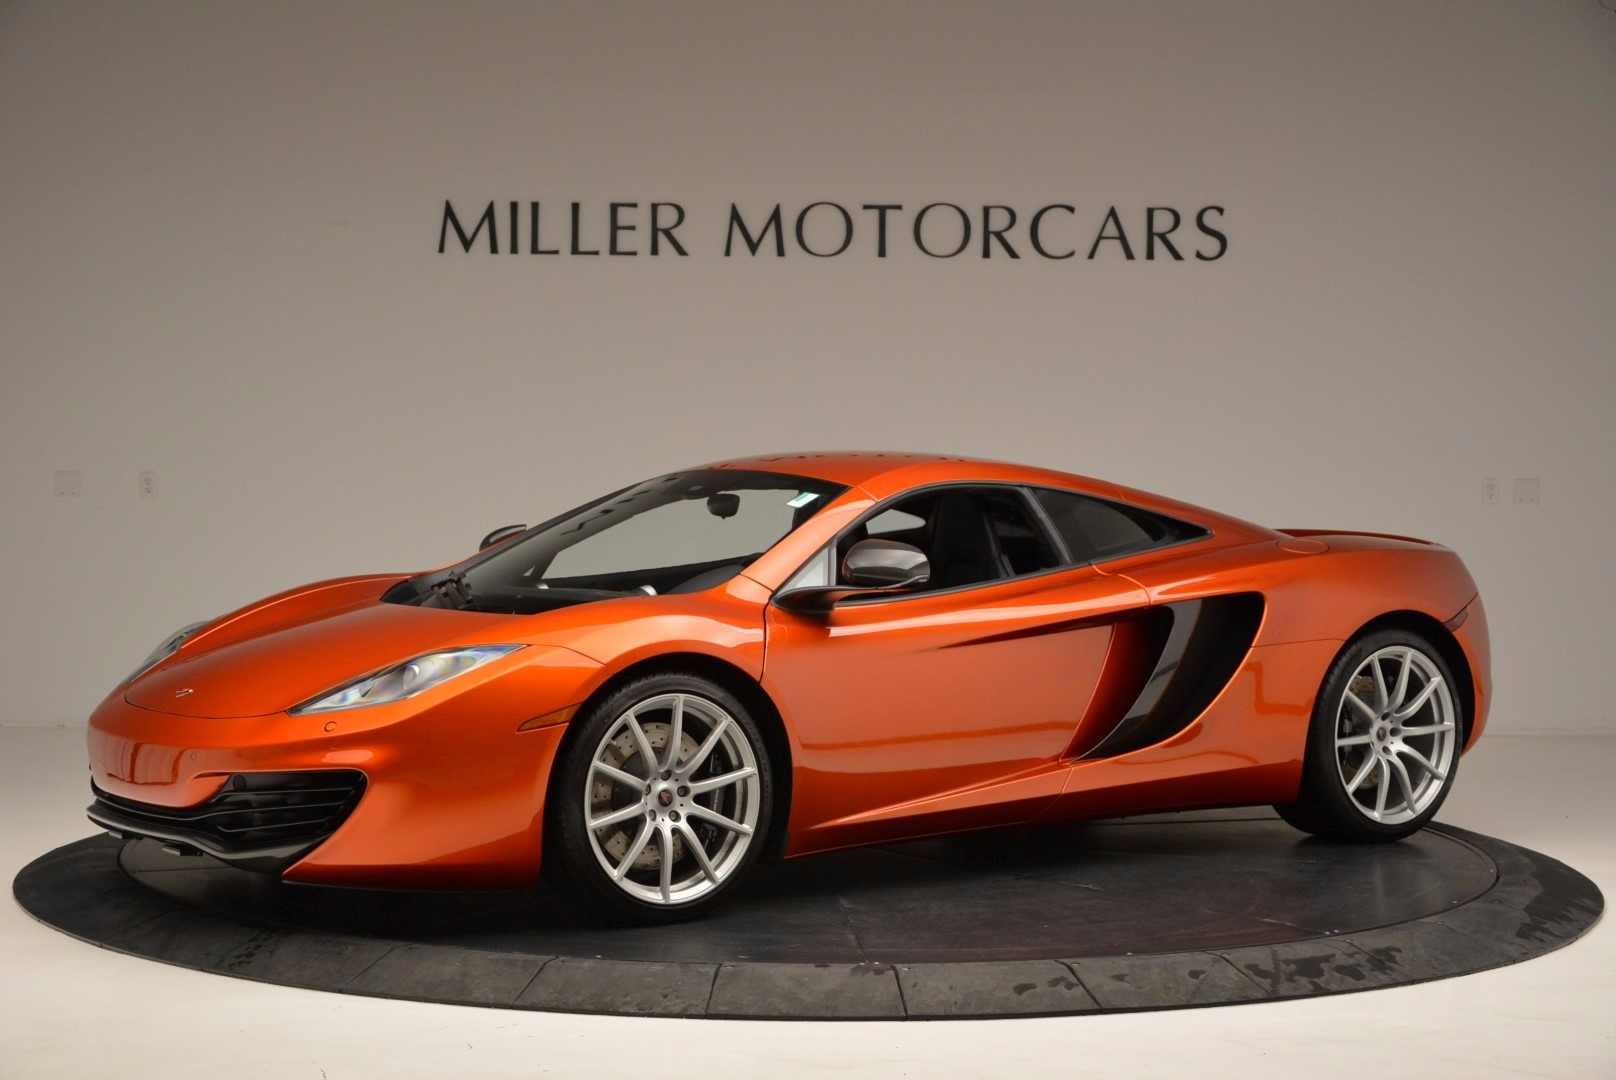 Used 2012 McLaren MP4-12C  For Sale In Greenwich, CT. Alfa Romeo of Greenwich, 3094 1035_p2